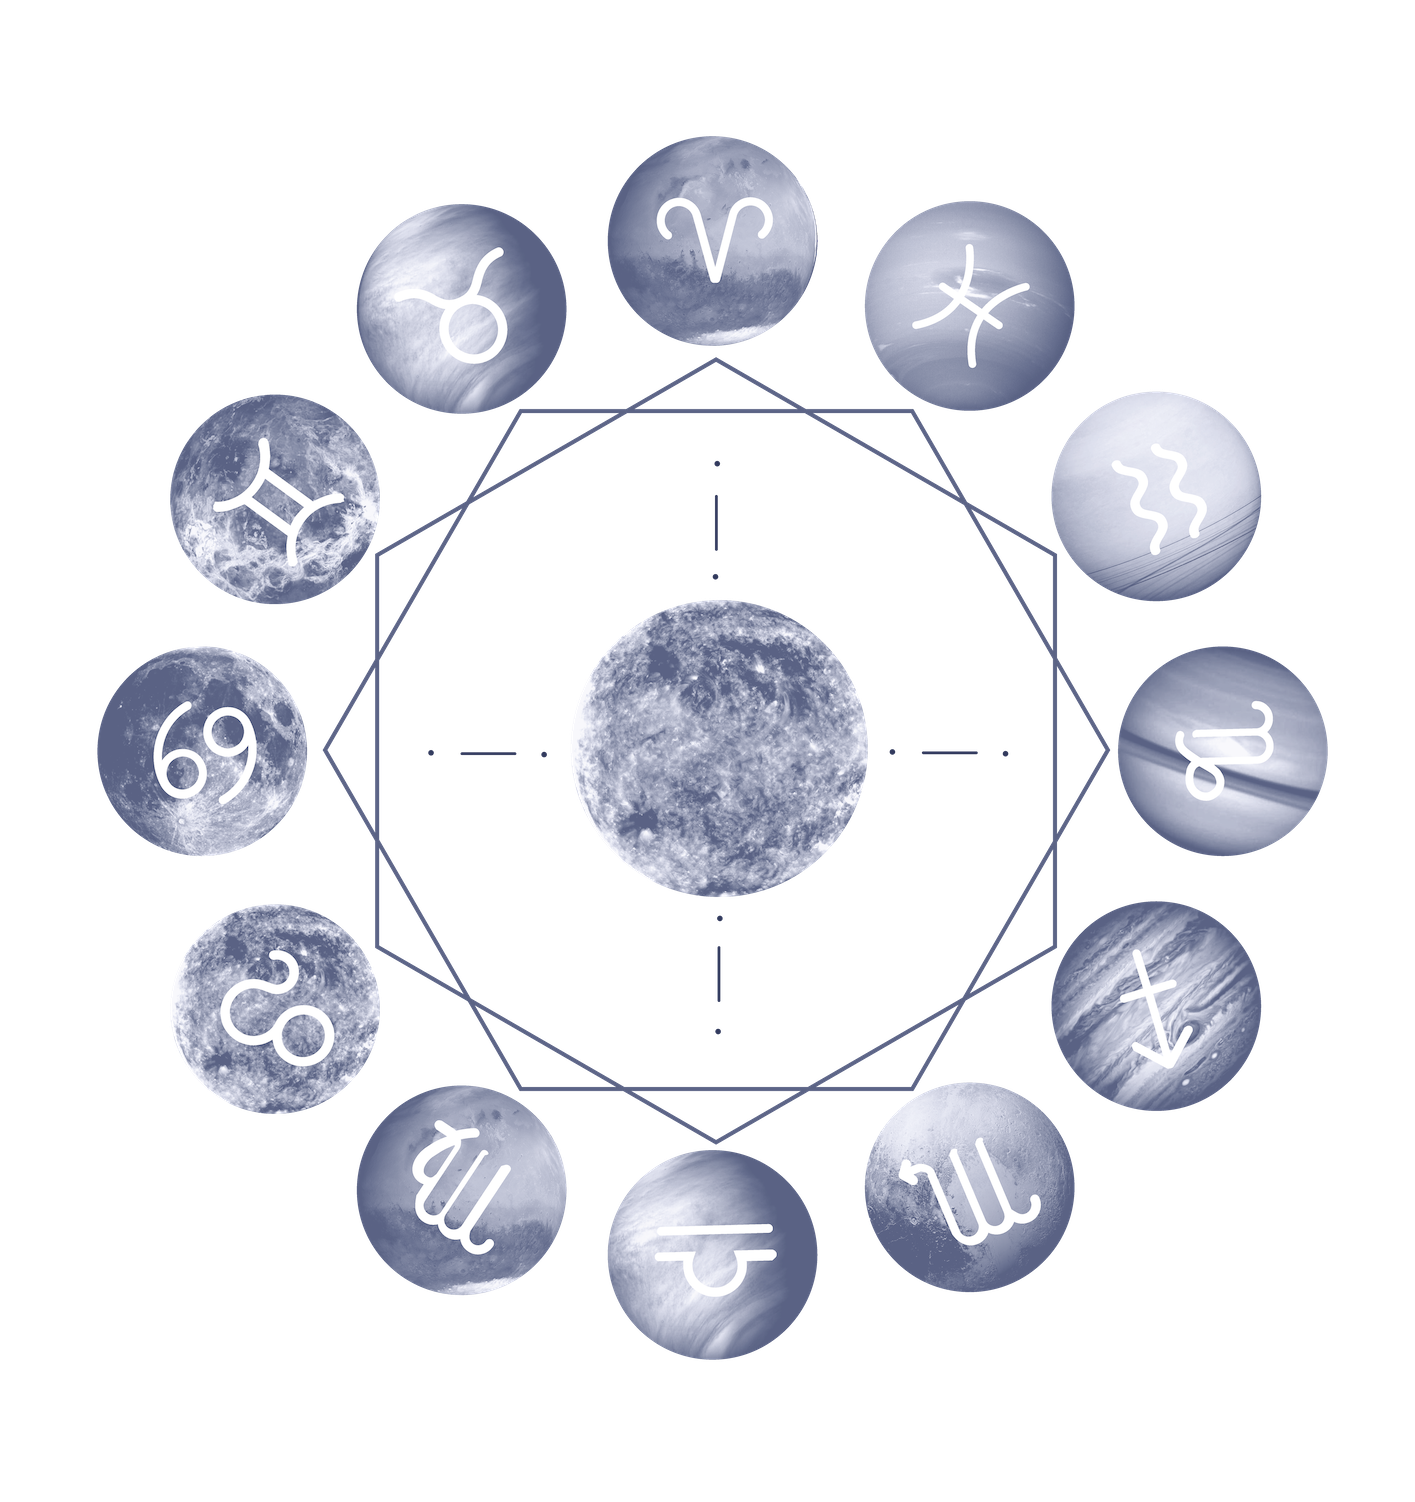 Michael bloomberg vedic astrology chart compatibility